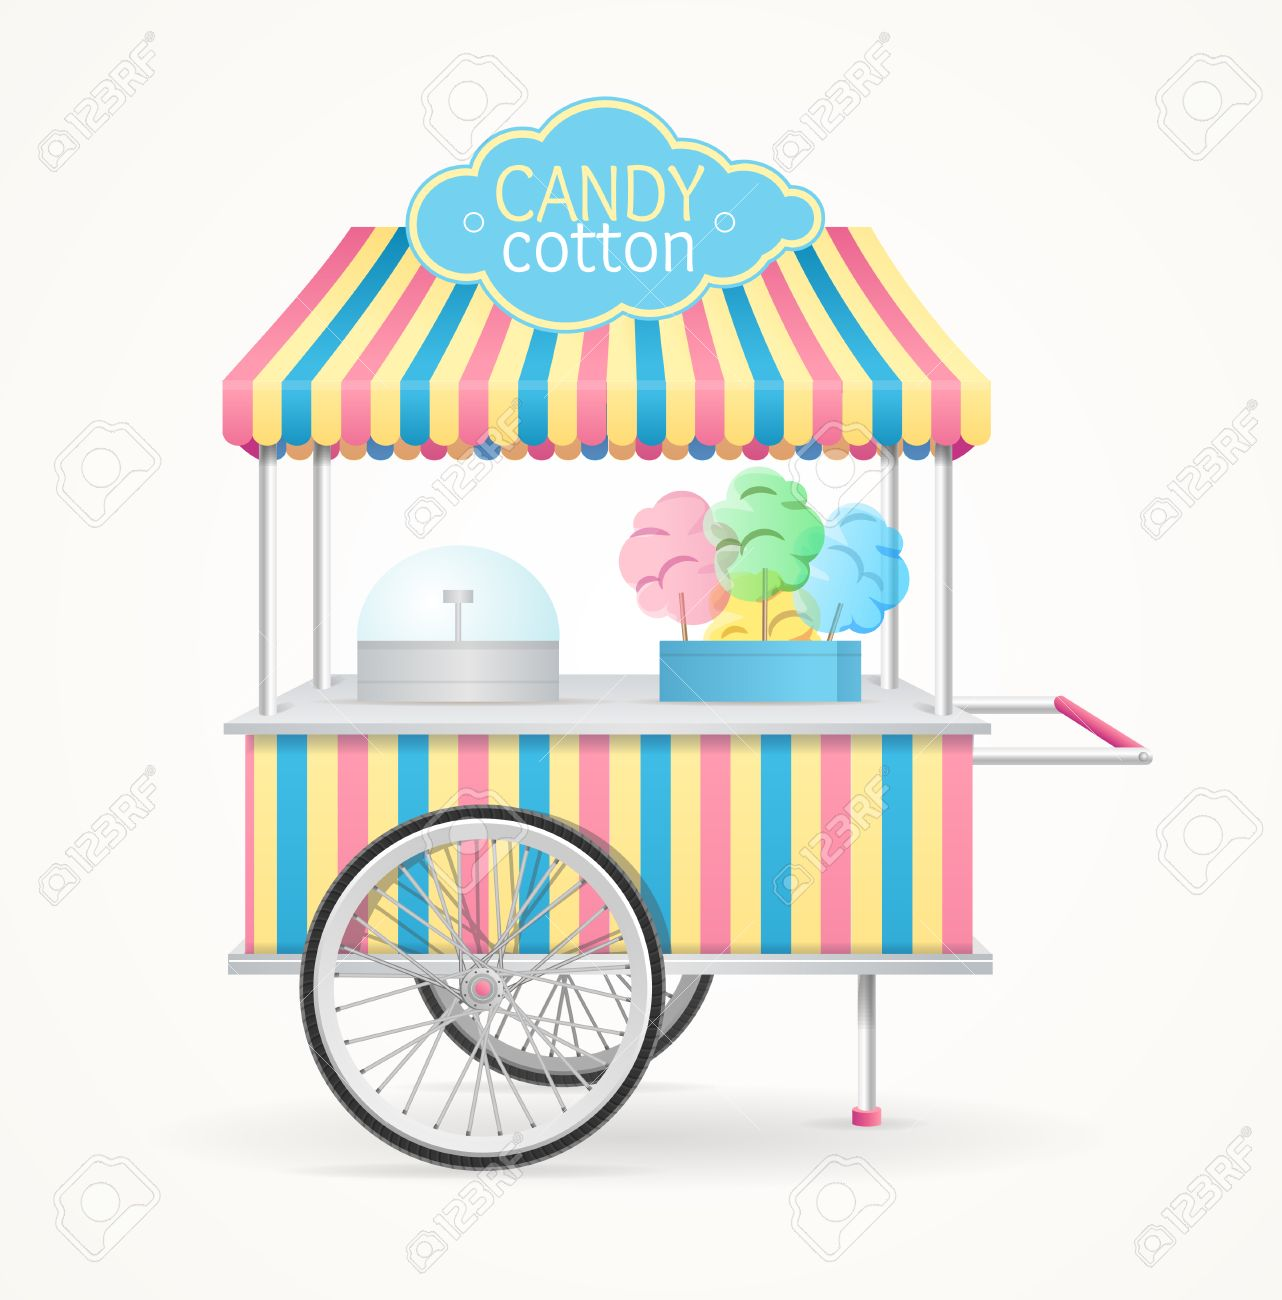 cotton candy street market